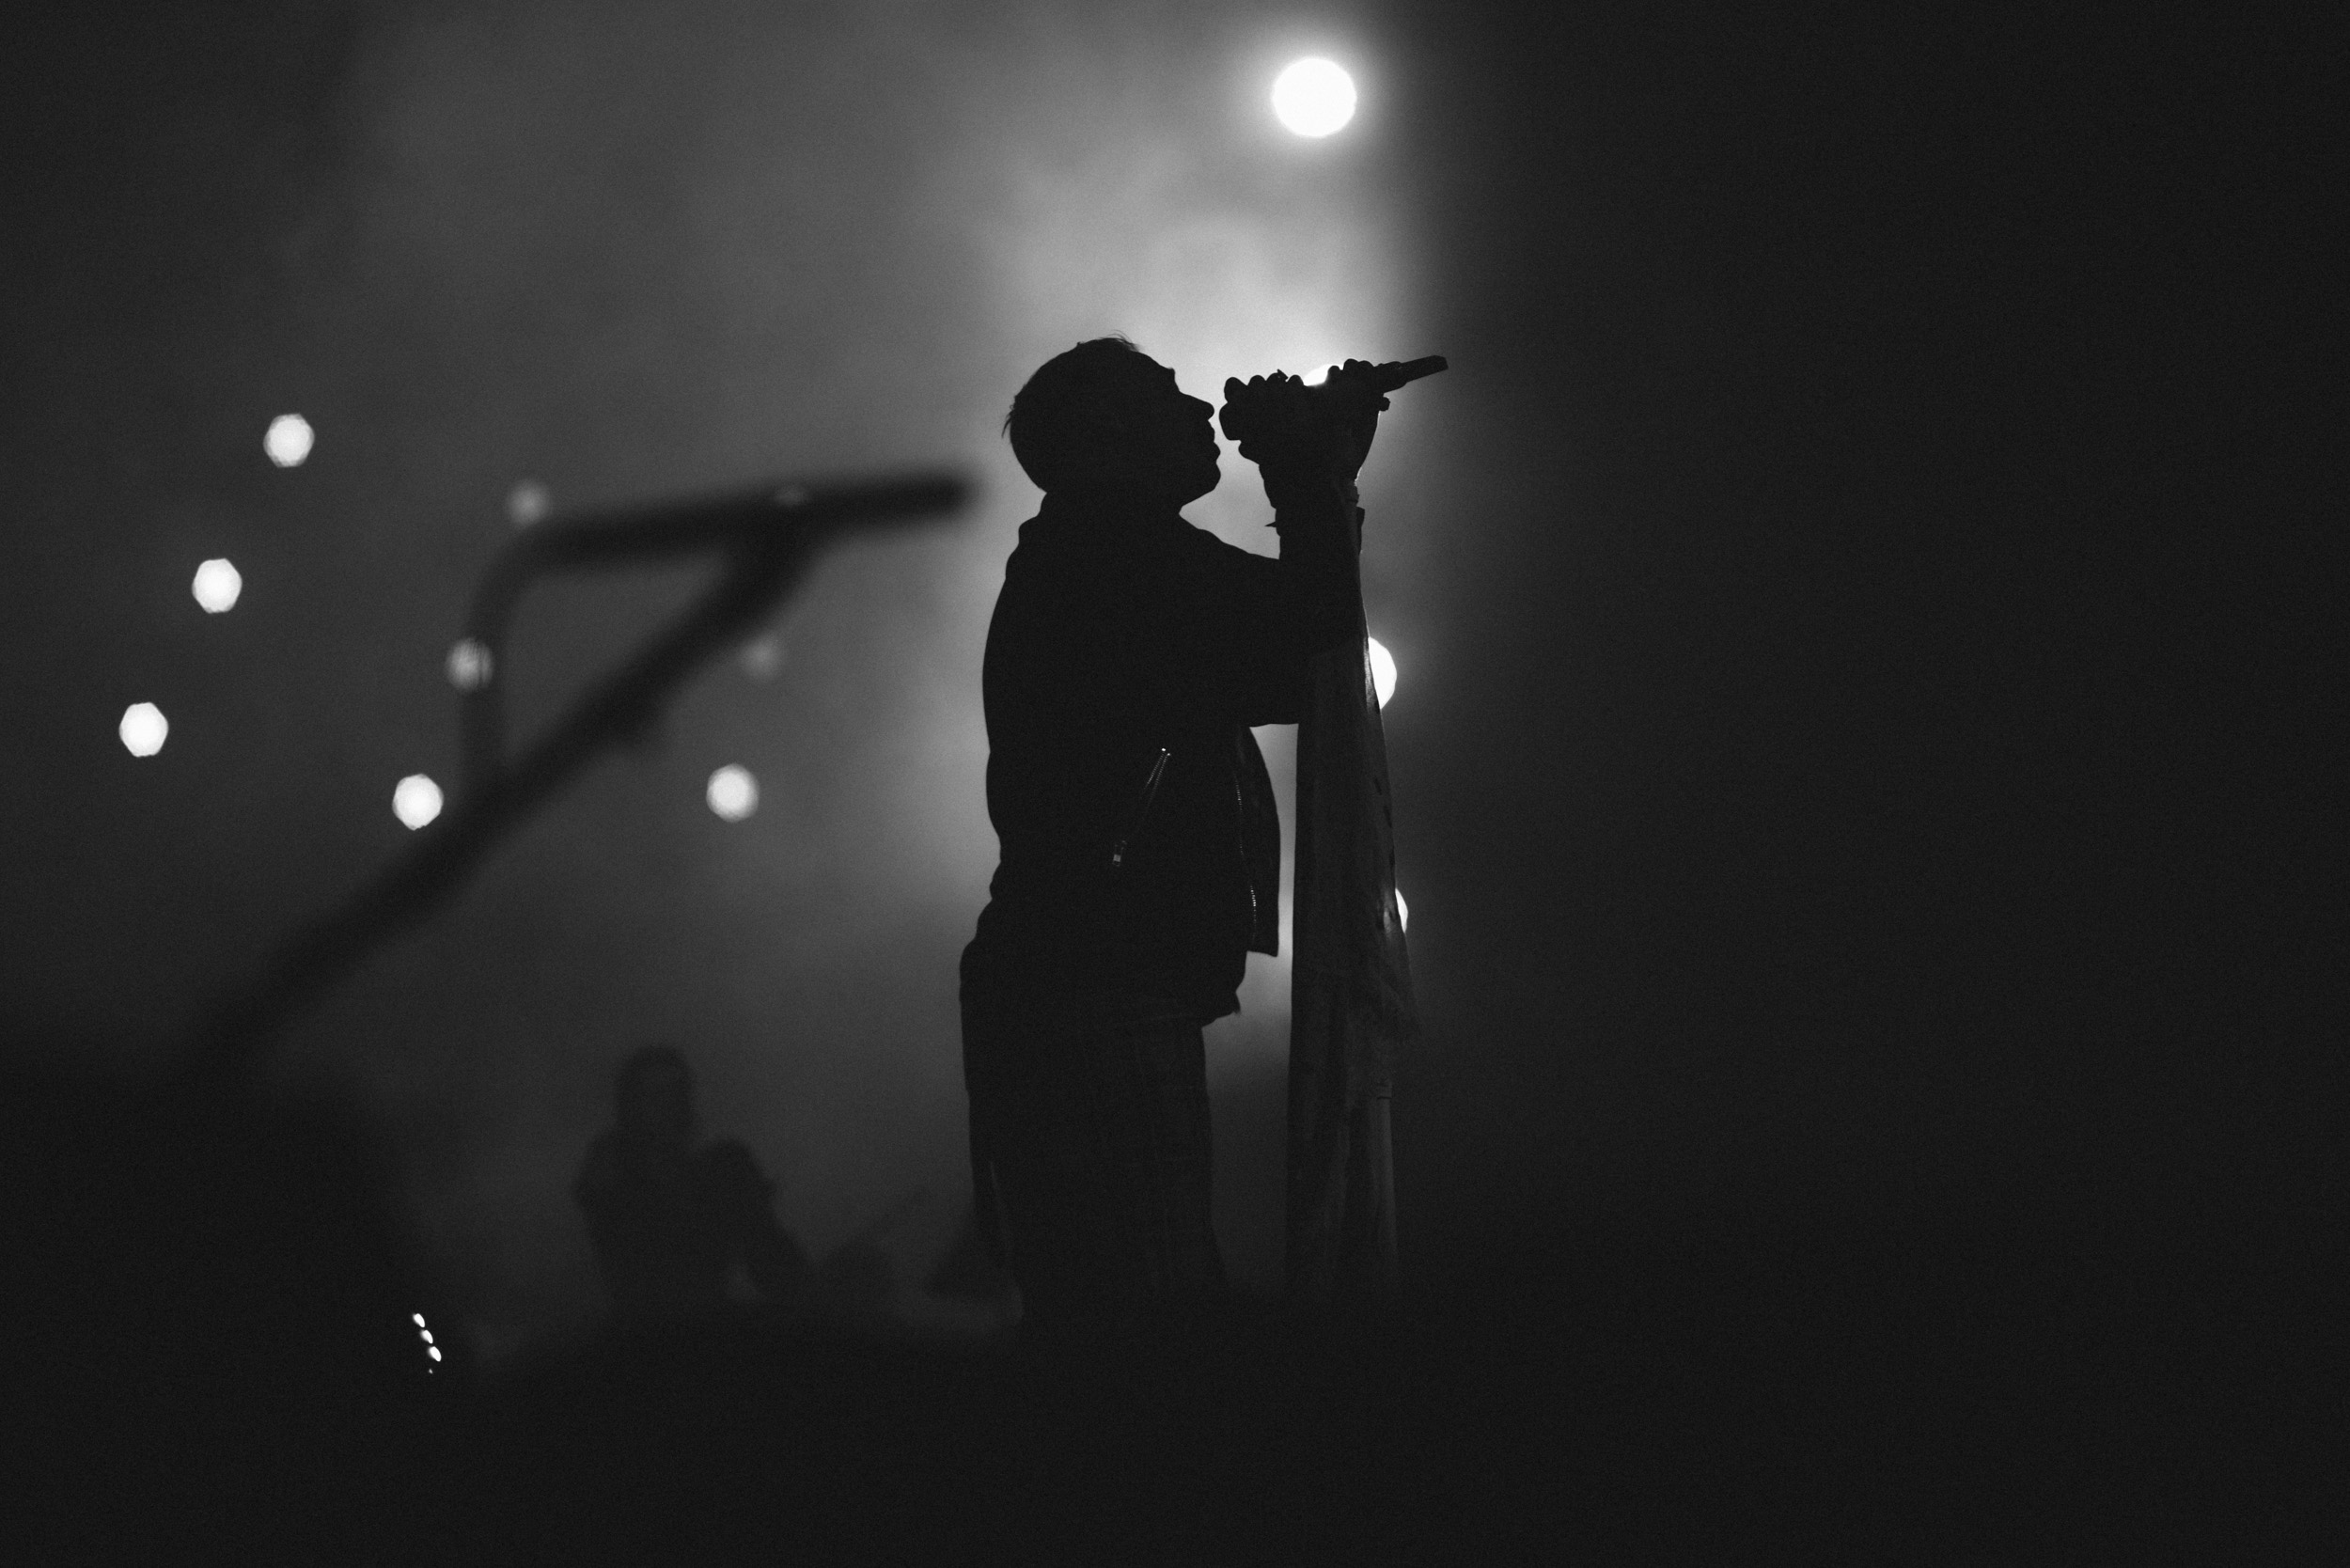 blackbear at Coachella 2018 - photographed with a Sony a7R III - Sigma 85mm f/1.4 Art - Sigma MC‑11 Mount Converter